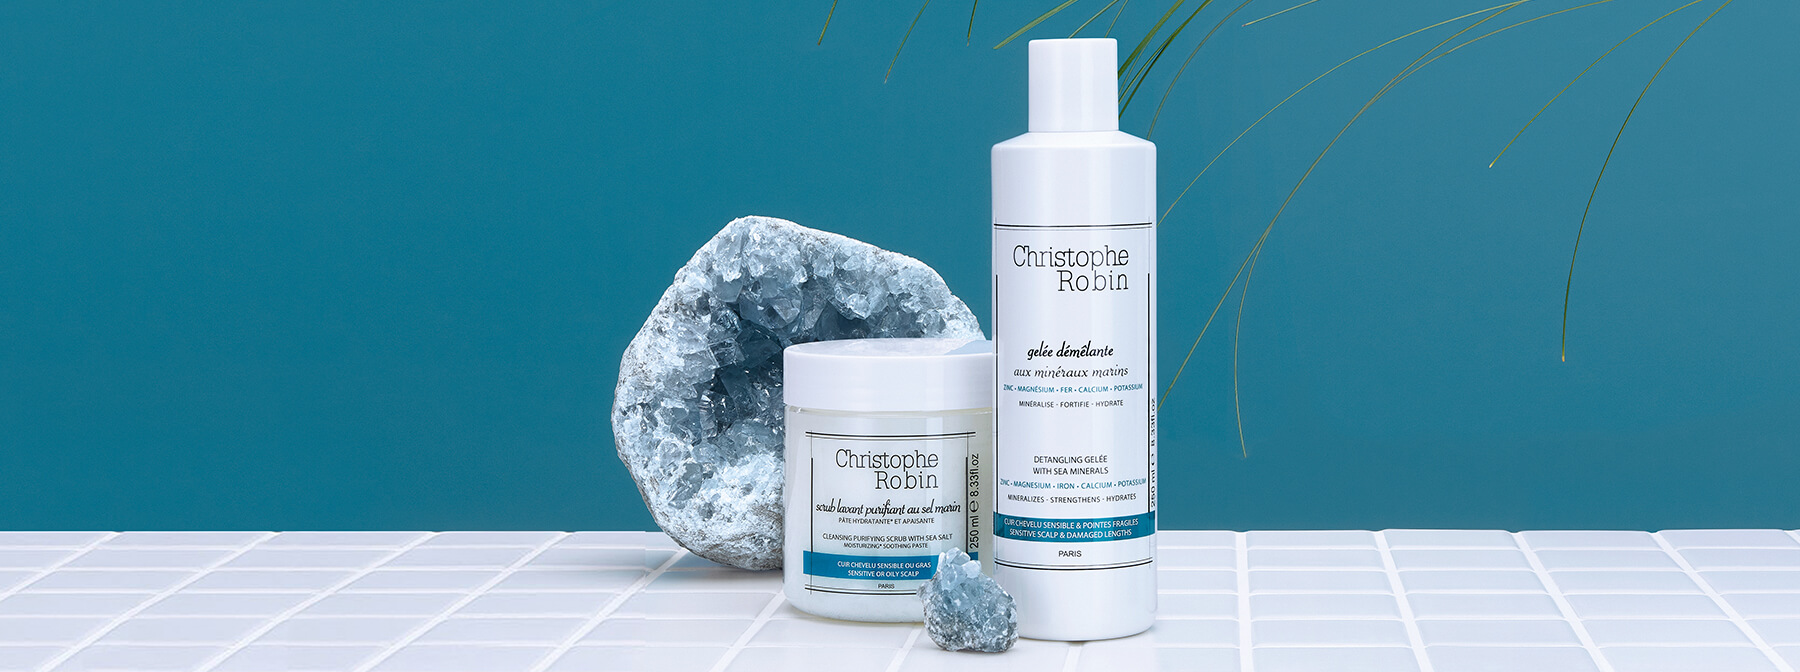 For more information about how to carry our products in your salon and other business opportunities please contact: contact@christophe-robin-us.com or amisoul@christophe-robin-us.com